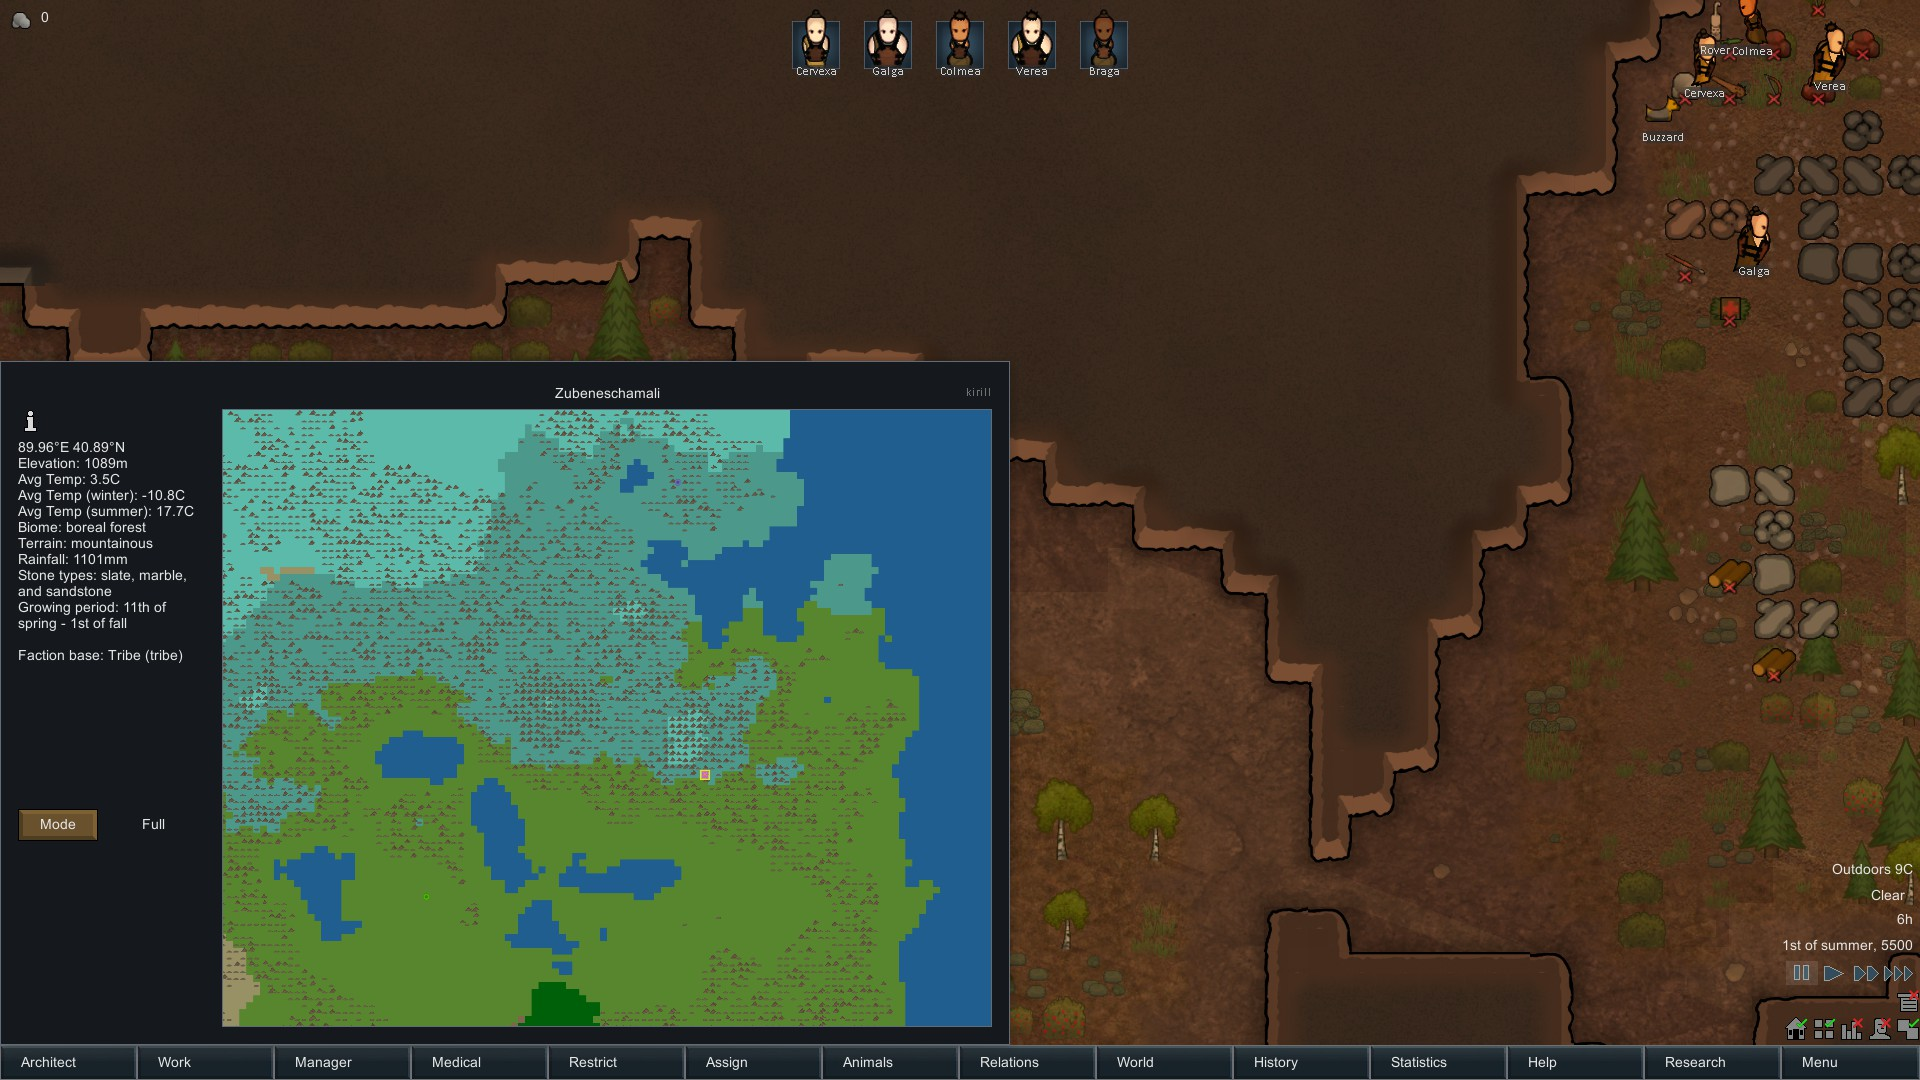 Awesome mountain map rimworld heres the seedmap size 300x225 gumiabroncs Gallery